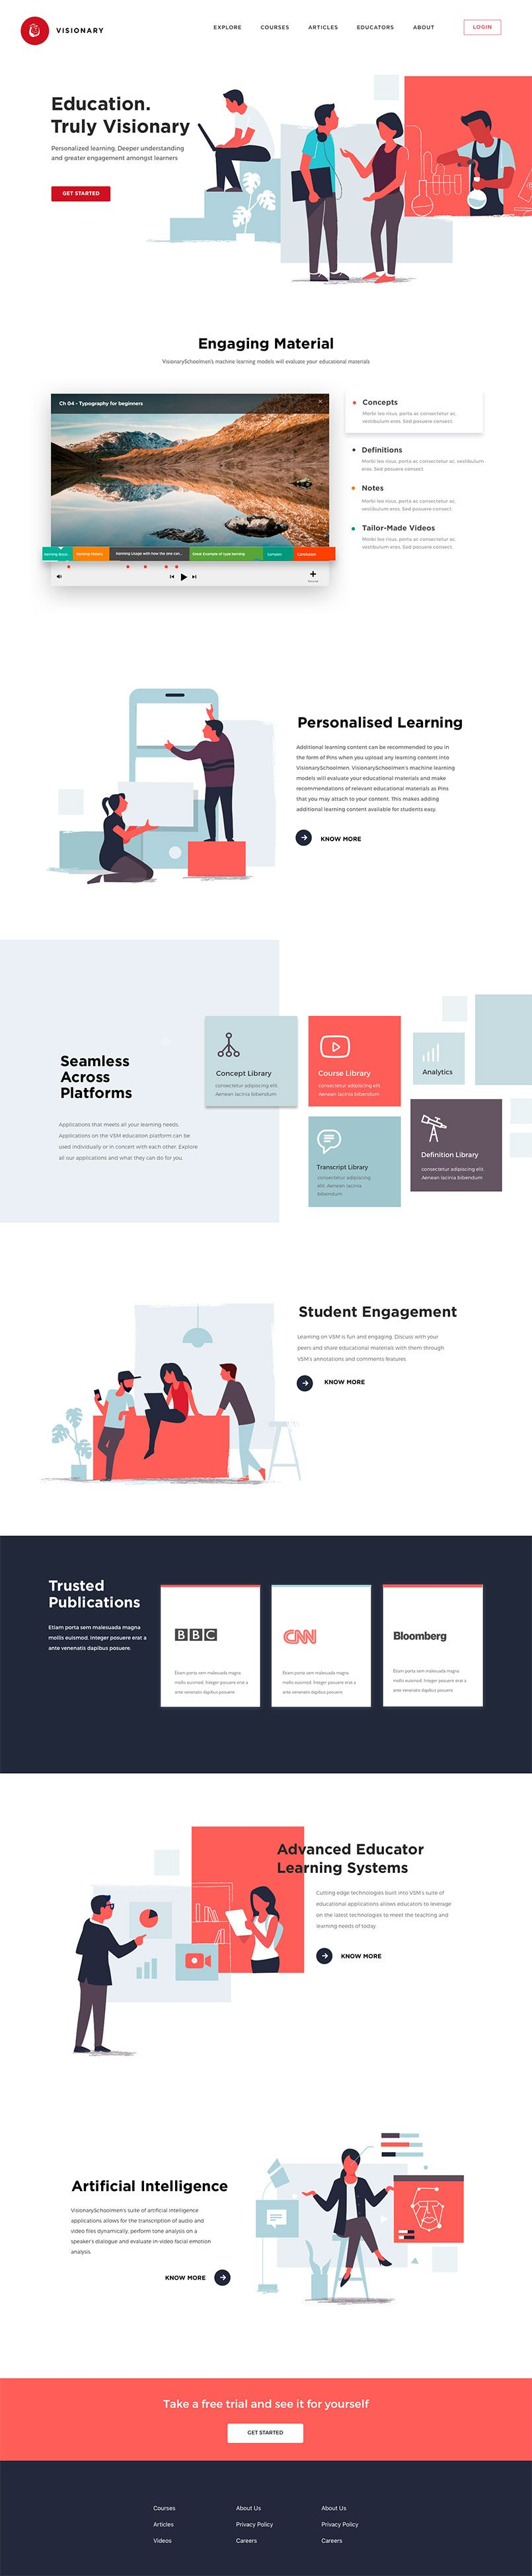 Personalised Learning In 2020 With Images Web Layout Design Web App Design Personalized Learning